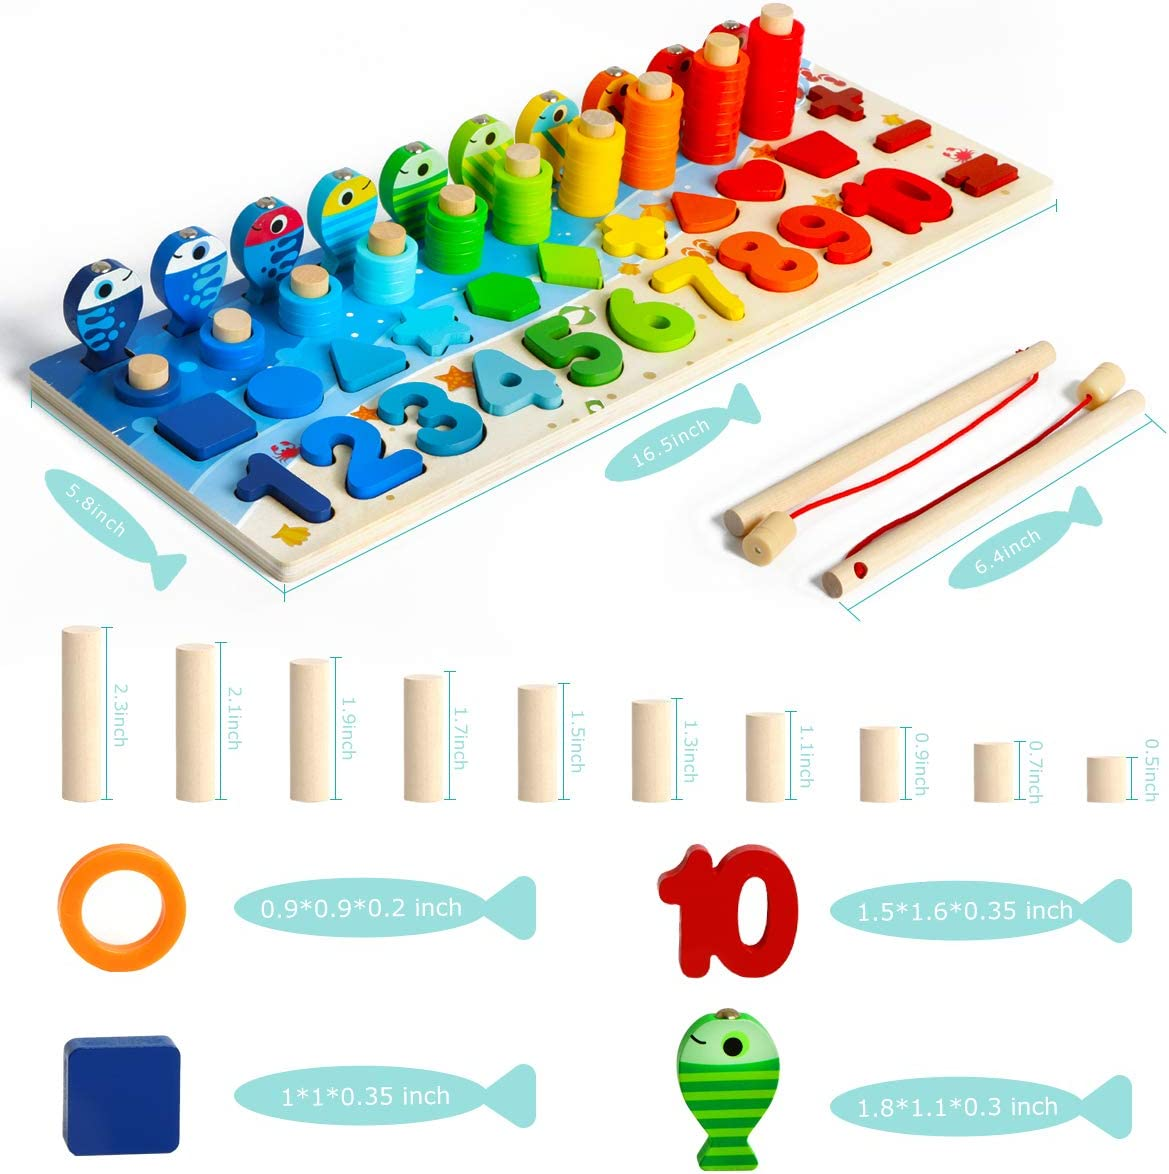 Fishing Game Math Toy for Age 3 4 5 6 Years olds Kids Wooden Number Puzzle Game Montessori Toys for Toddlers Preschool Educational Toddler Learning Wood Puzzles Sorting Toys for Boys and Girls